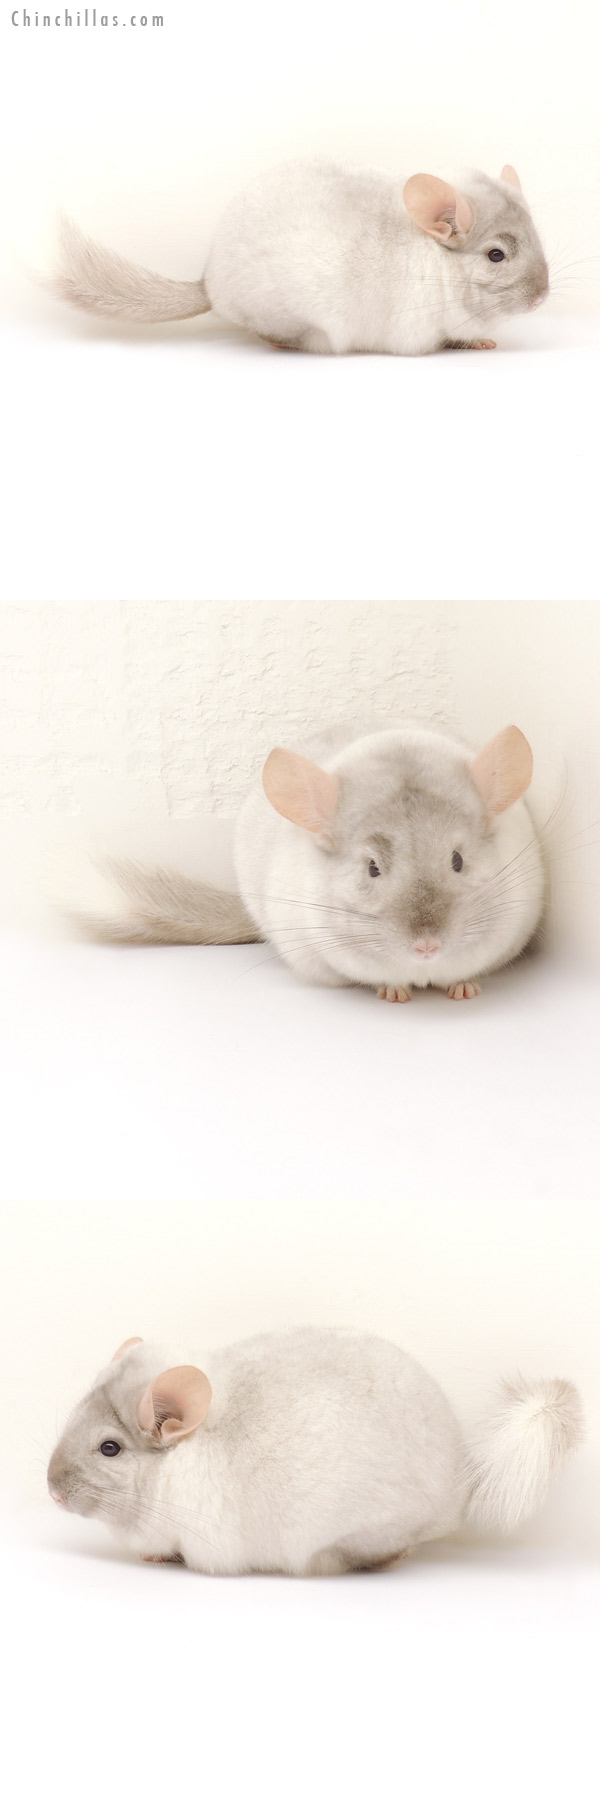 13282 Large Tan & White Mosaic Male Chinchilla